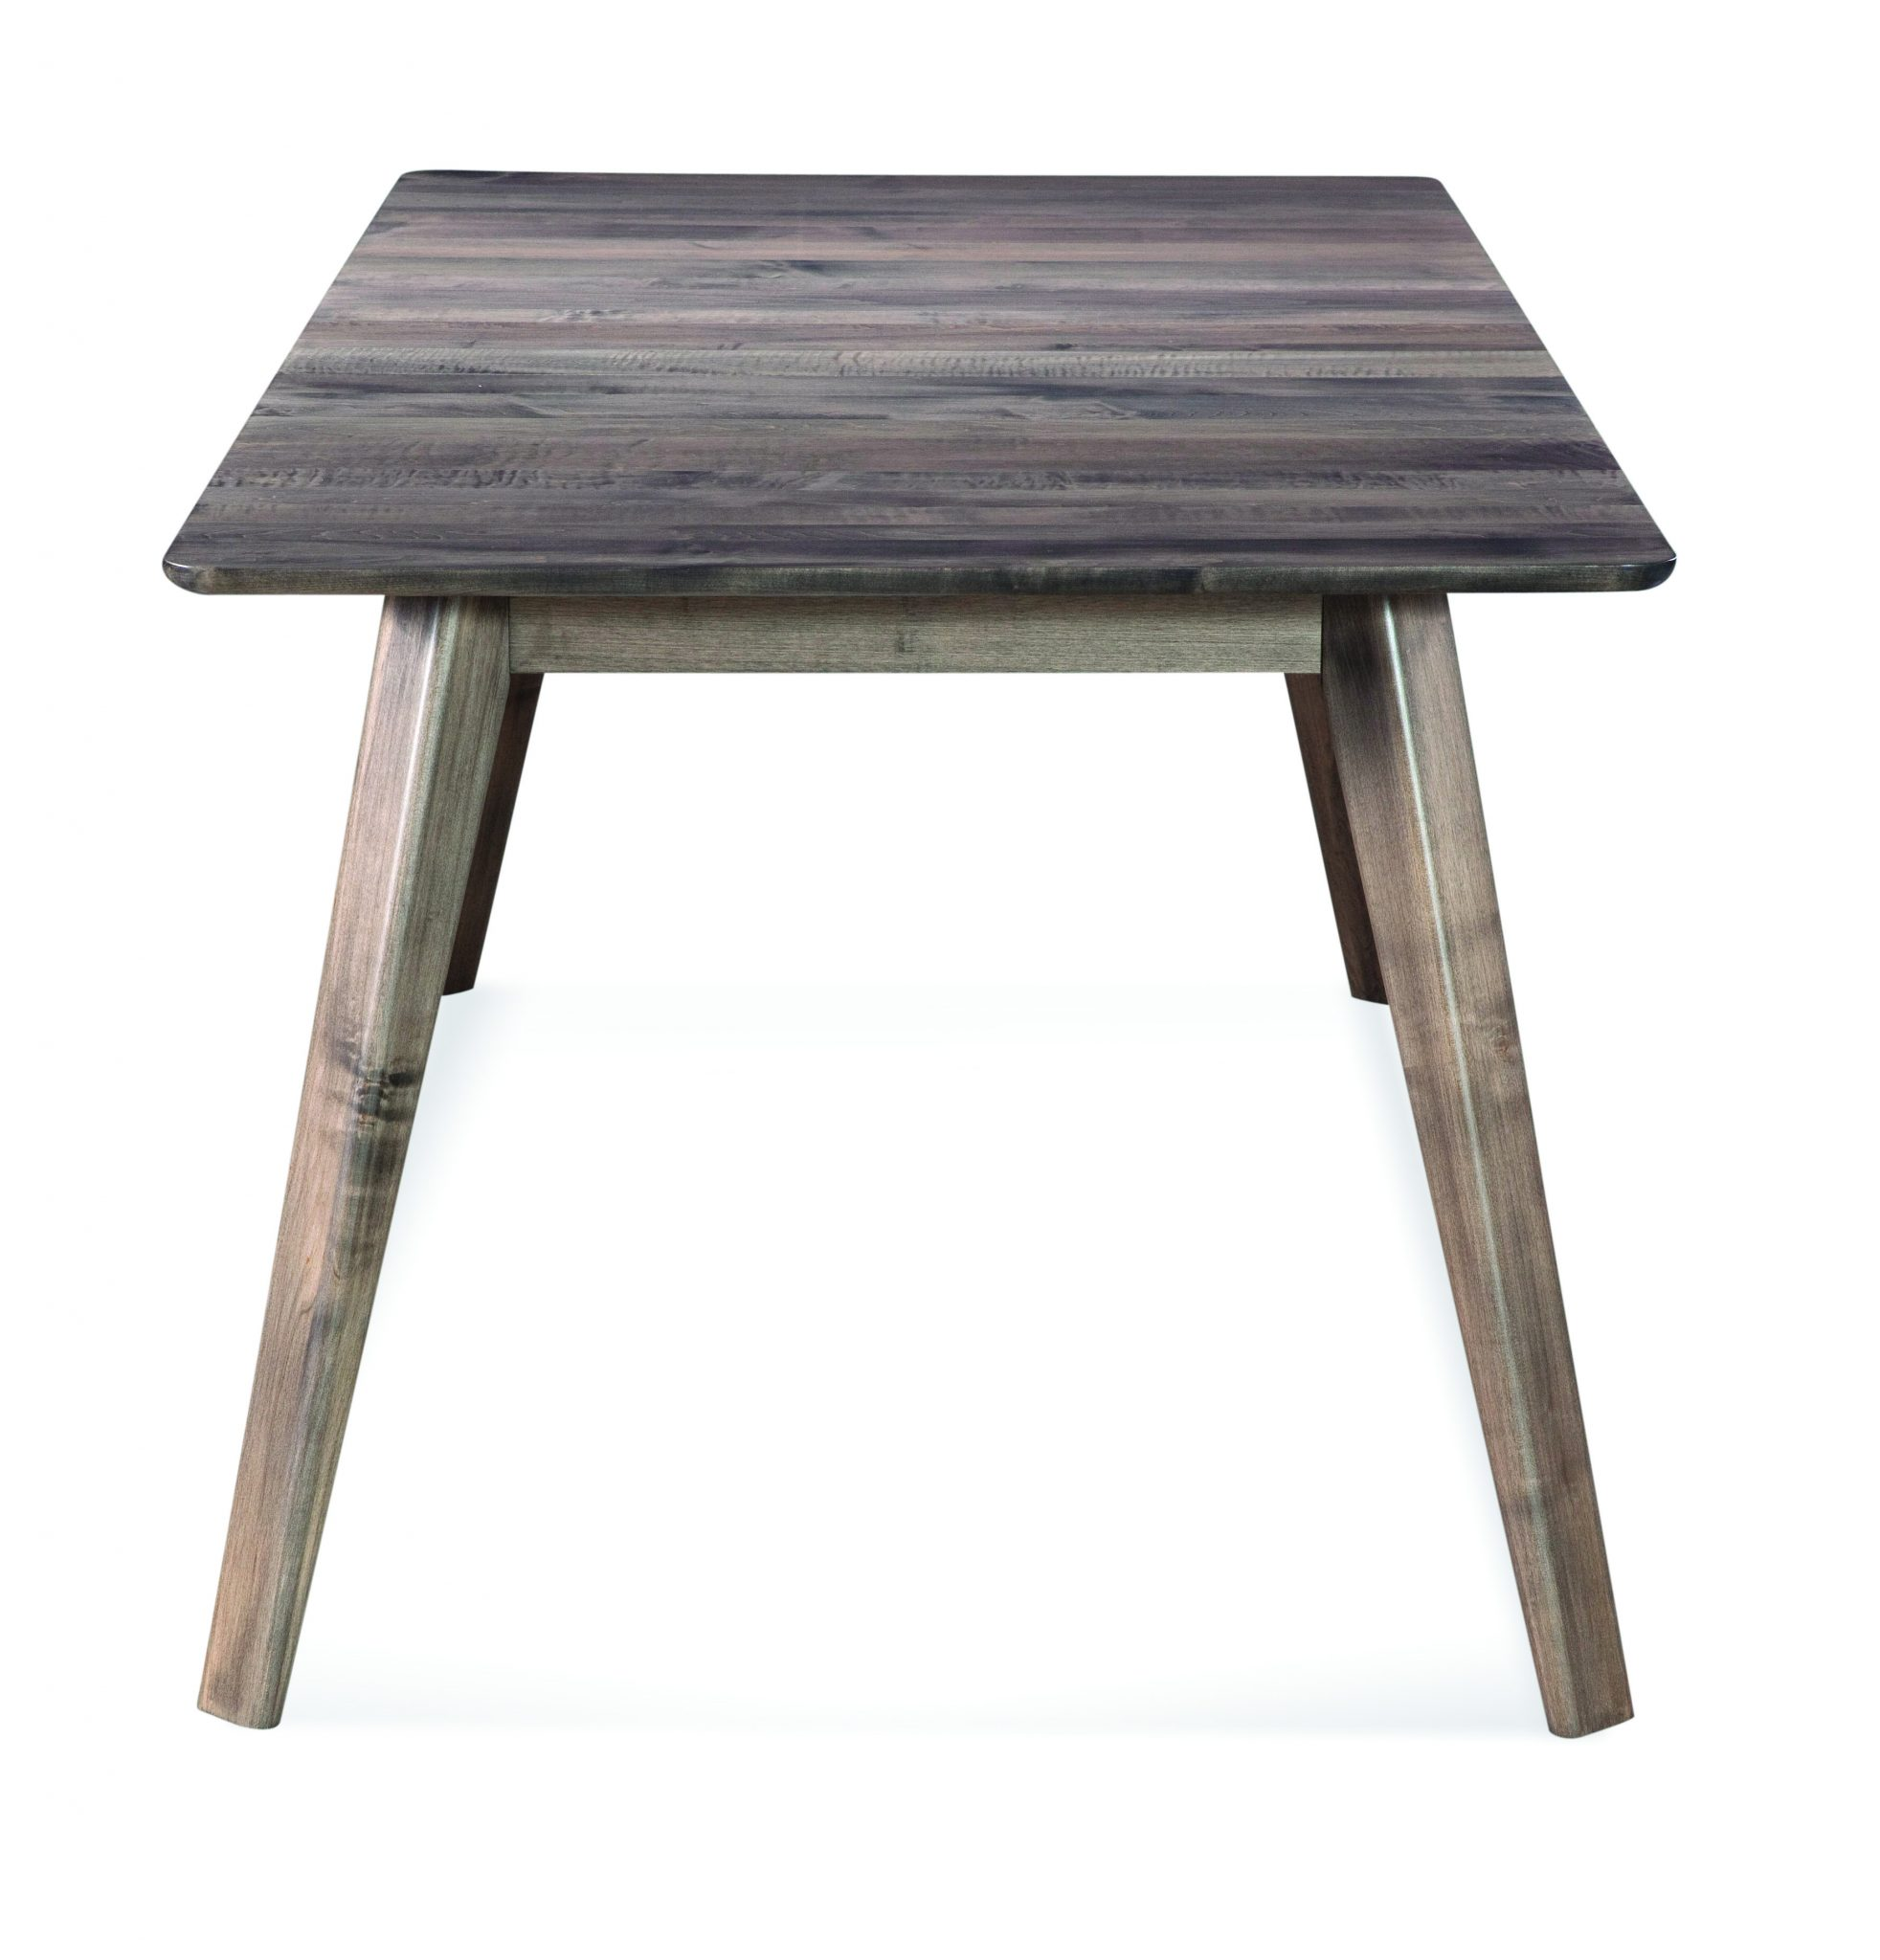 Alton dining table from the skyline collection